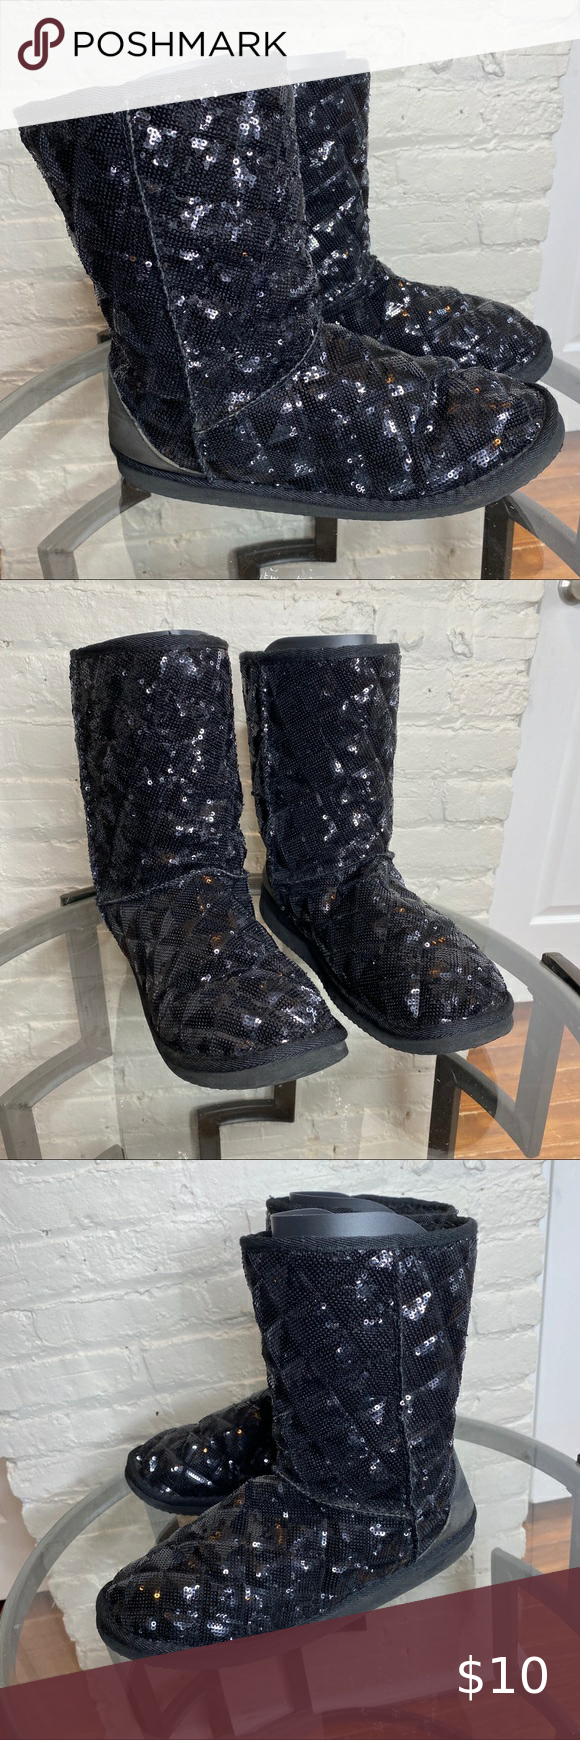 size 11 sequin boots